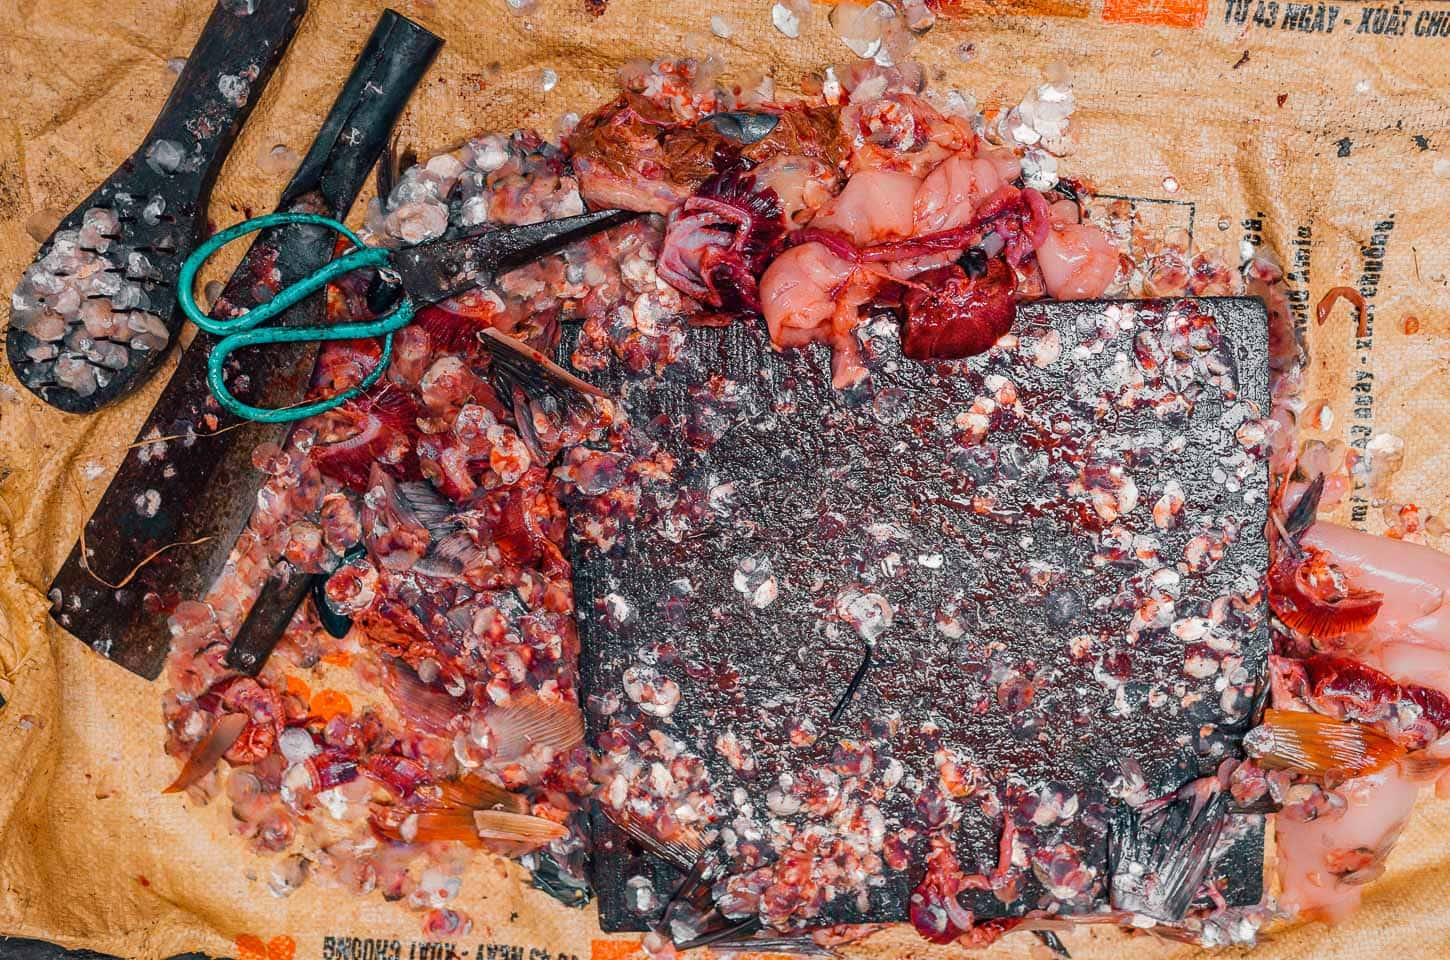 Fish guts and scales cover a wooden cutting board in Ba Dinh, Hanoi